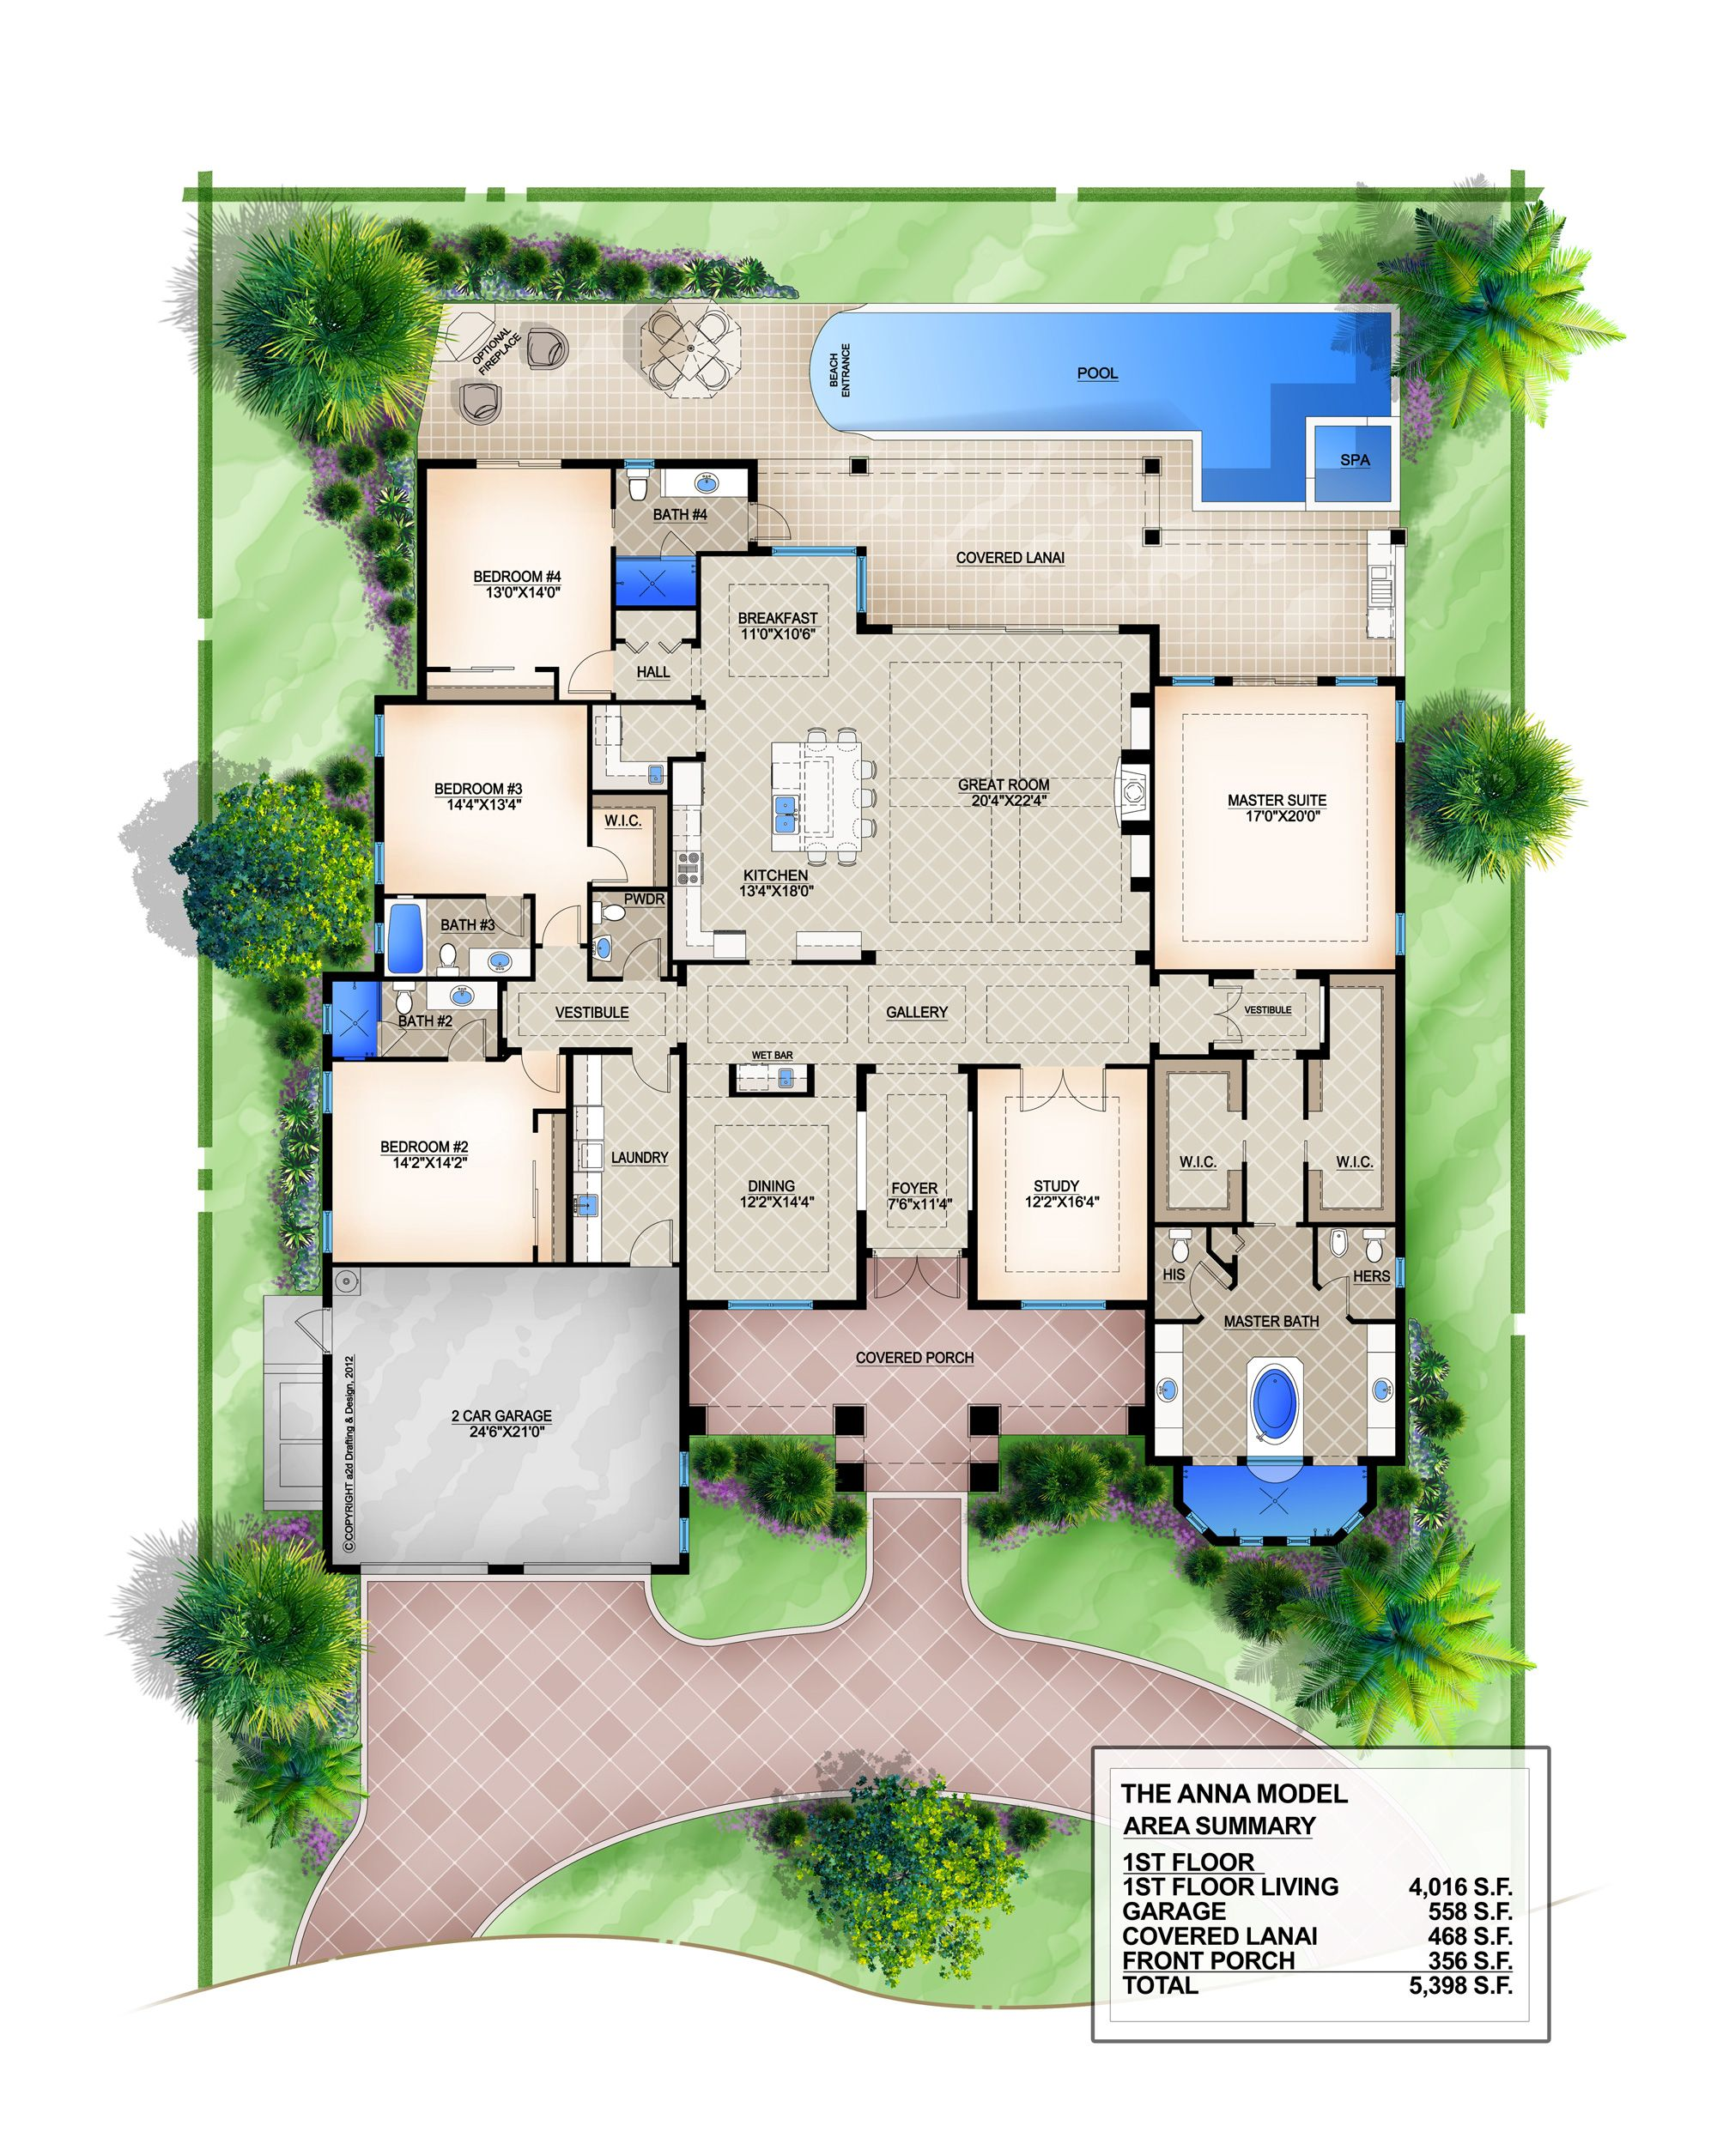 Anna Coastal Floor Plan 4 Bedroom 1 2 Bath Story Car Garage House Offered By South Florida Design Of Bonita Springs